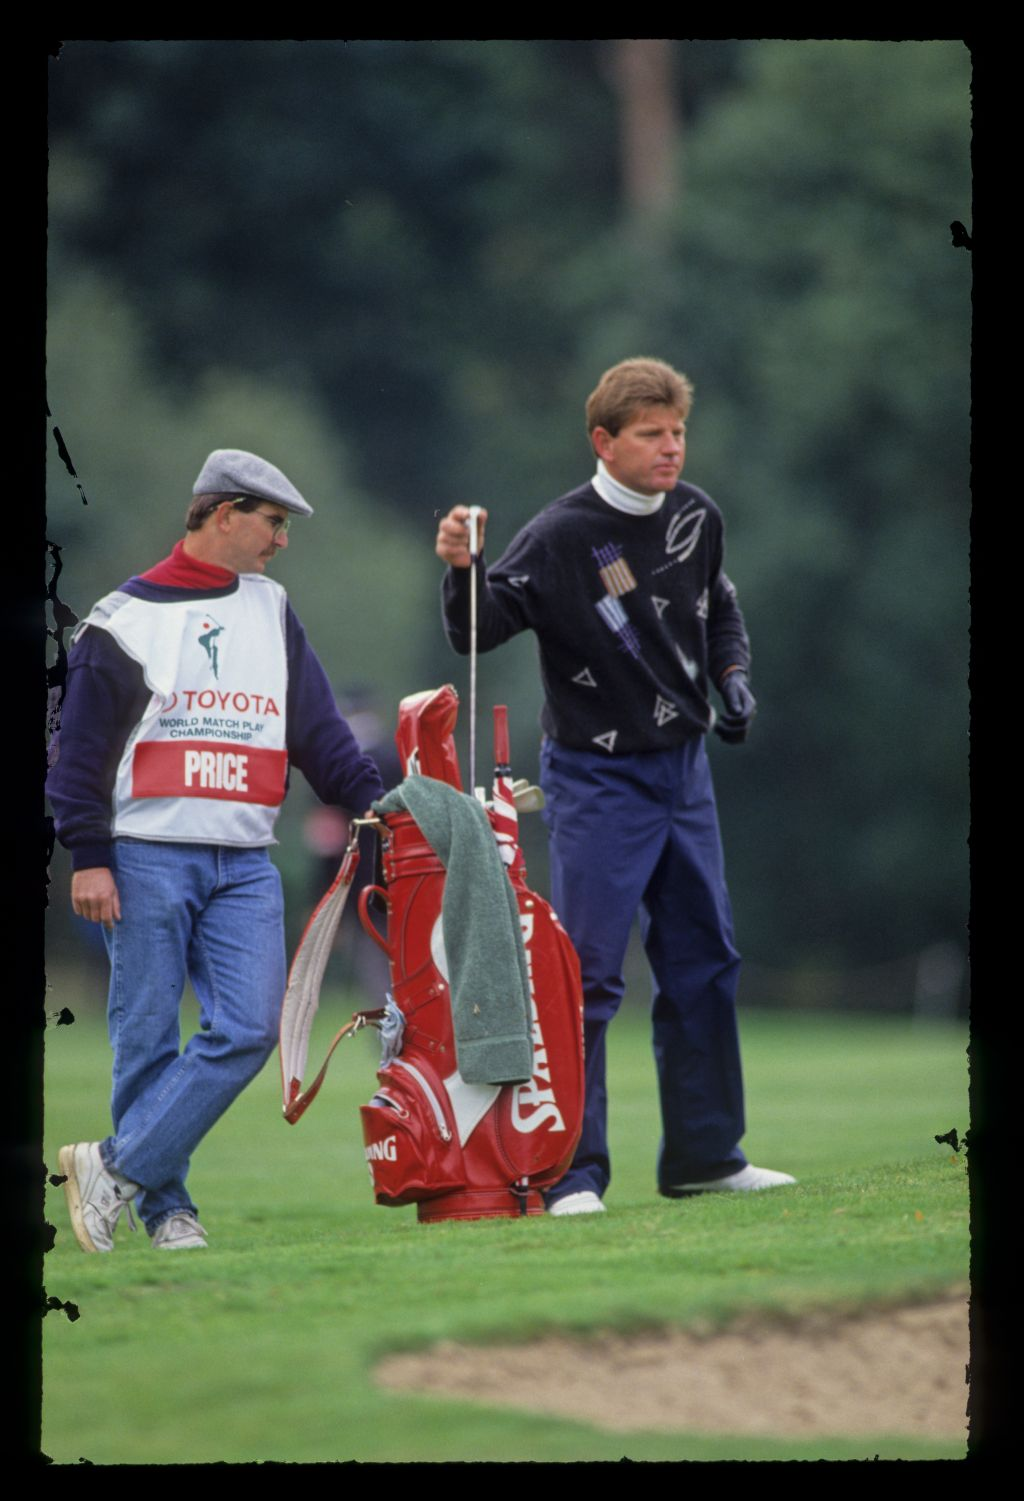 Nick Price and his caddie considering their options from a bunker during the 1991 Toyota World Matchplay